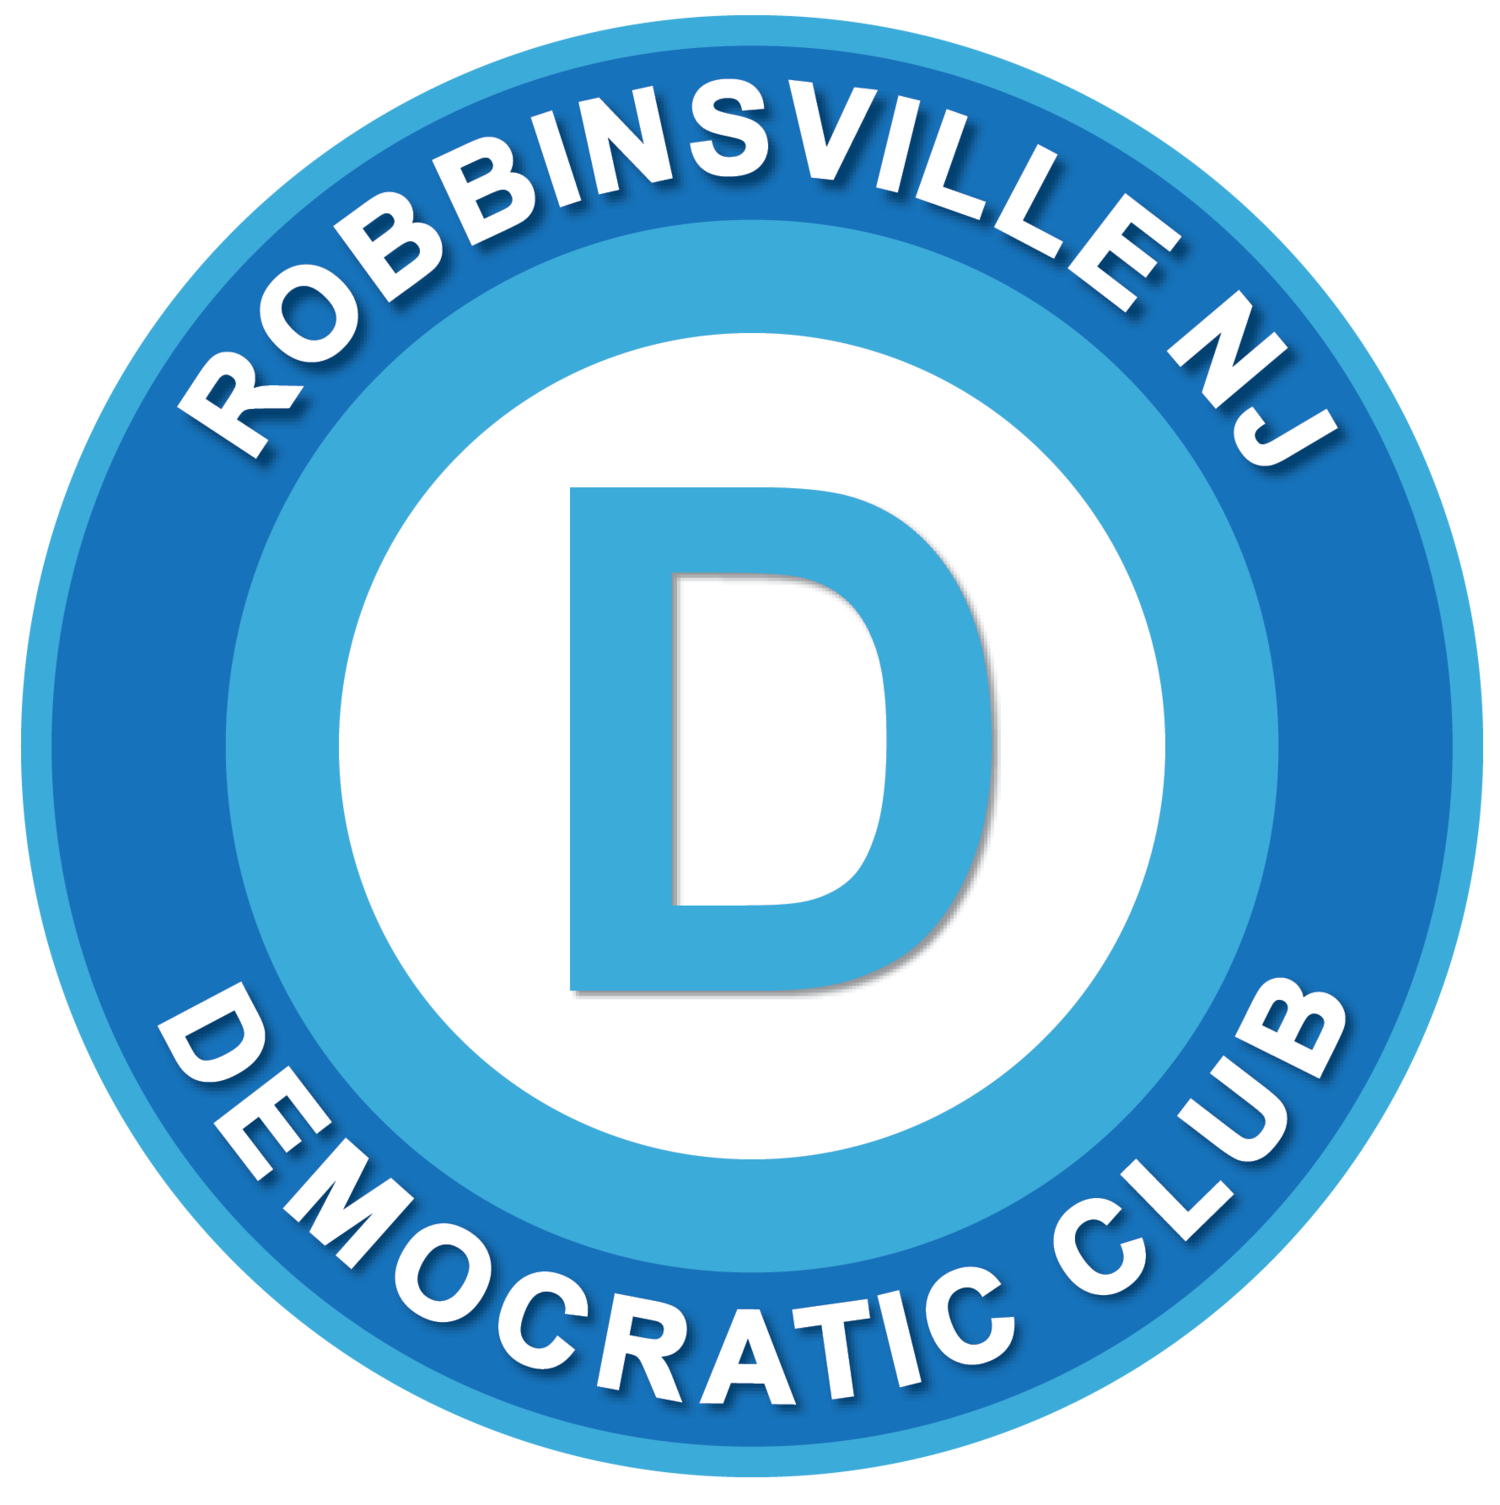 Robbinsville Democratic Club